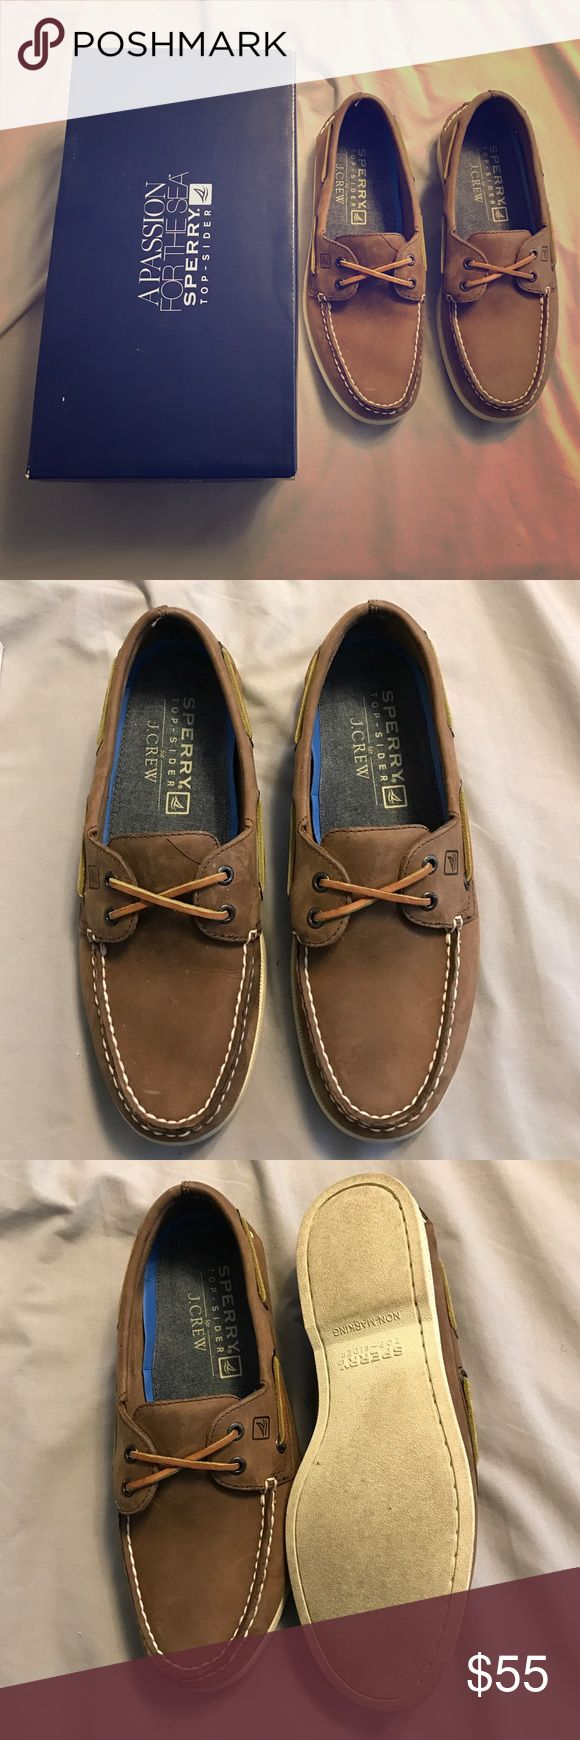 Men's Sperry Topsider for J.Crew Boat Shoes Worn only once. Sperry Topsider for J.Crew Men's size 9.5 in excellent condition. Sperry Top-Sider Shoes Boat Shoes